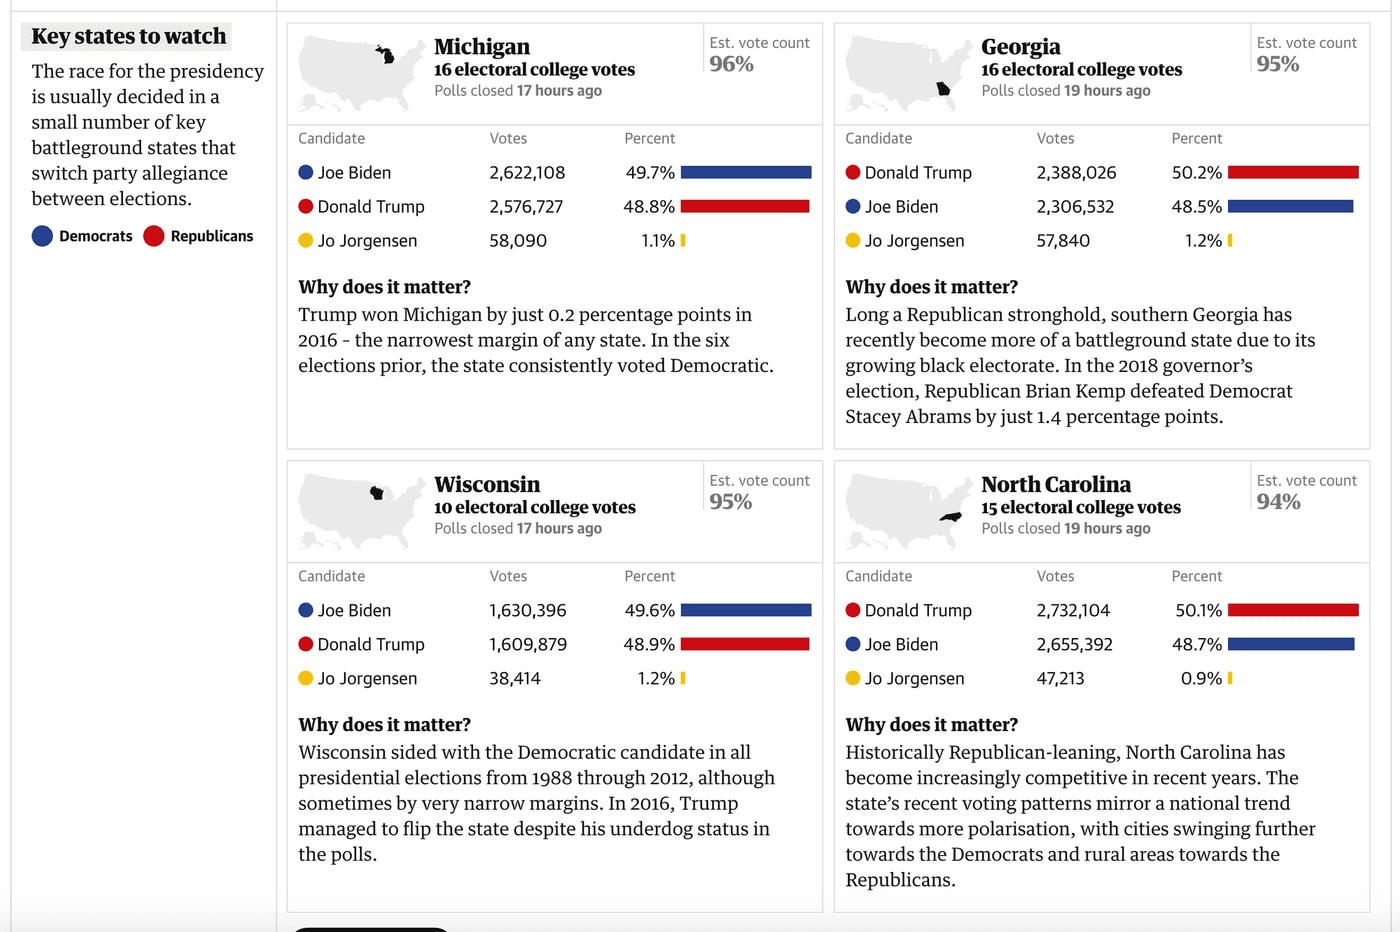 The Guardian's election results: grid of cards. Each card contains: state name, US map with state highlighted, electoral college votes, when the polls closed, how much is left to count, votes for each candidate, percentage of votes for each candidate, and why the results of that state matter